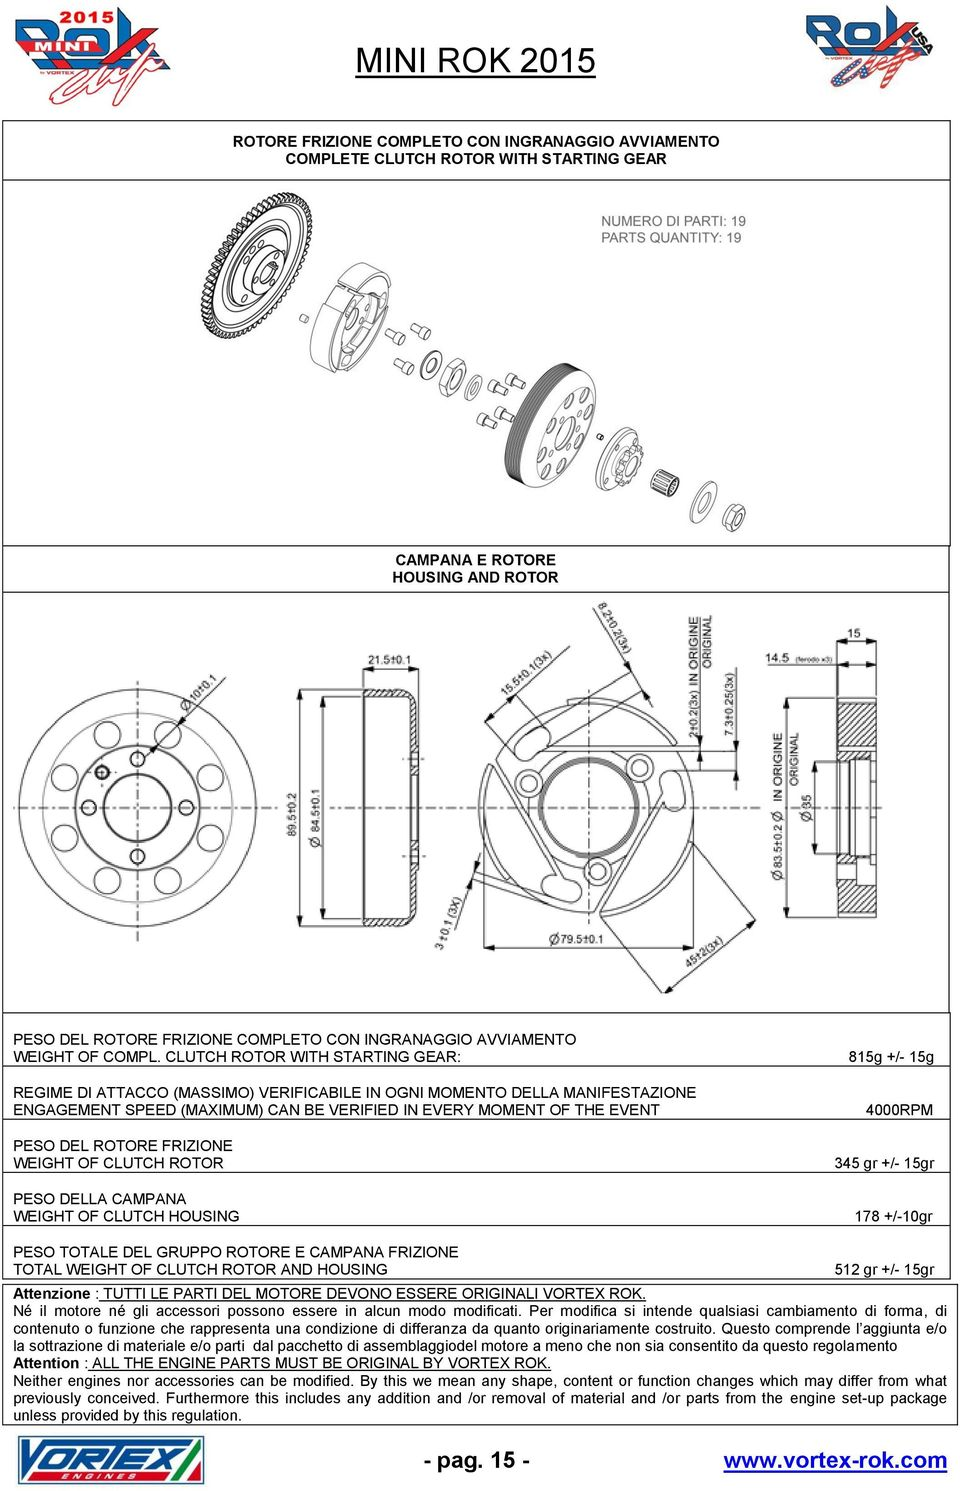 CLUTCH ROTOR WITH STARTING GEAR: REGIME DI ATTACCO (MASSIMO) VERIFICABILE IN OGNI MOMENTO DELLA MANIFESTAZIONE ENGAGEMENT SPEED (MAXIMUM) CAN BE VERIFIED IN EVERY